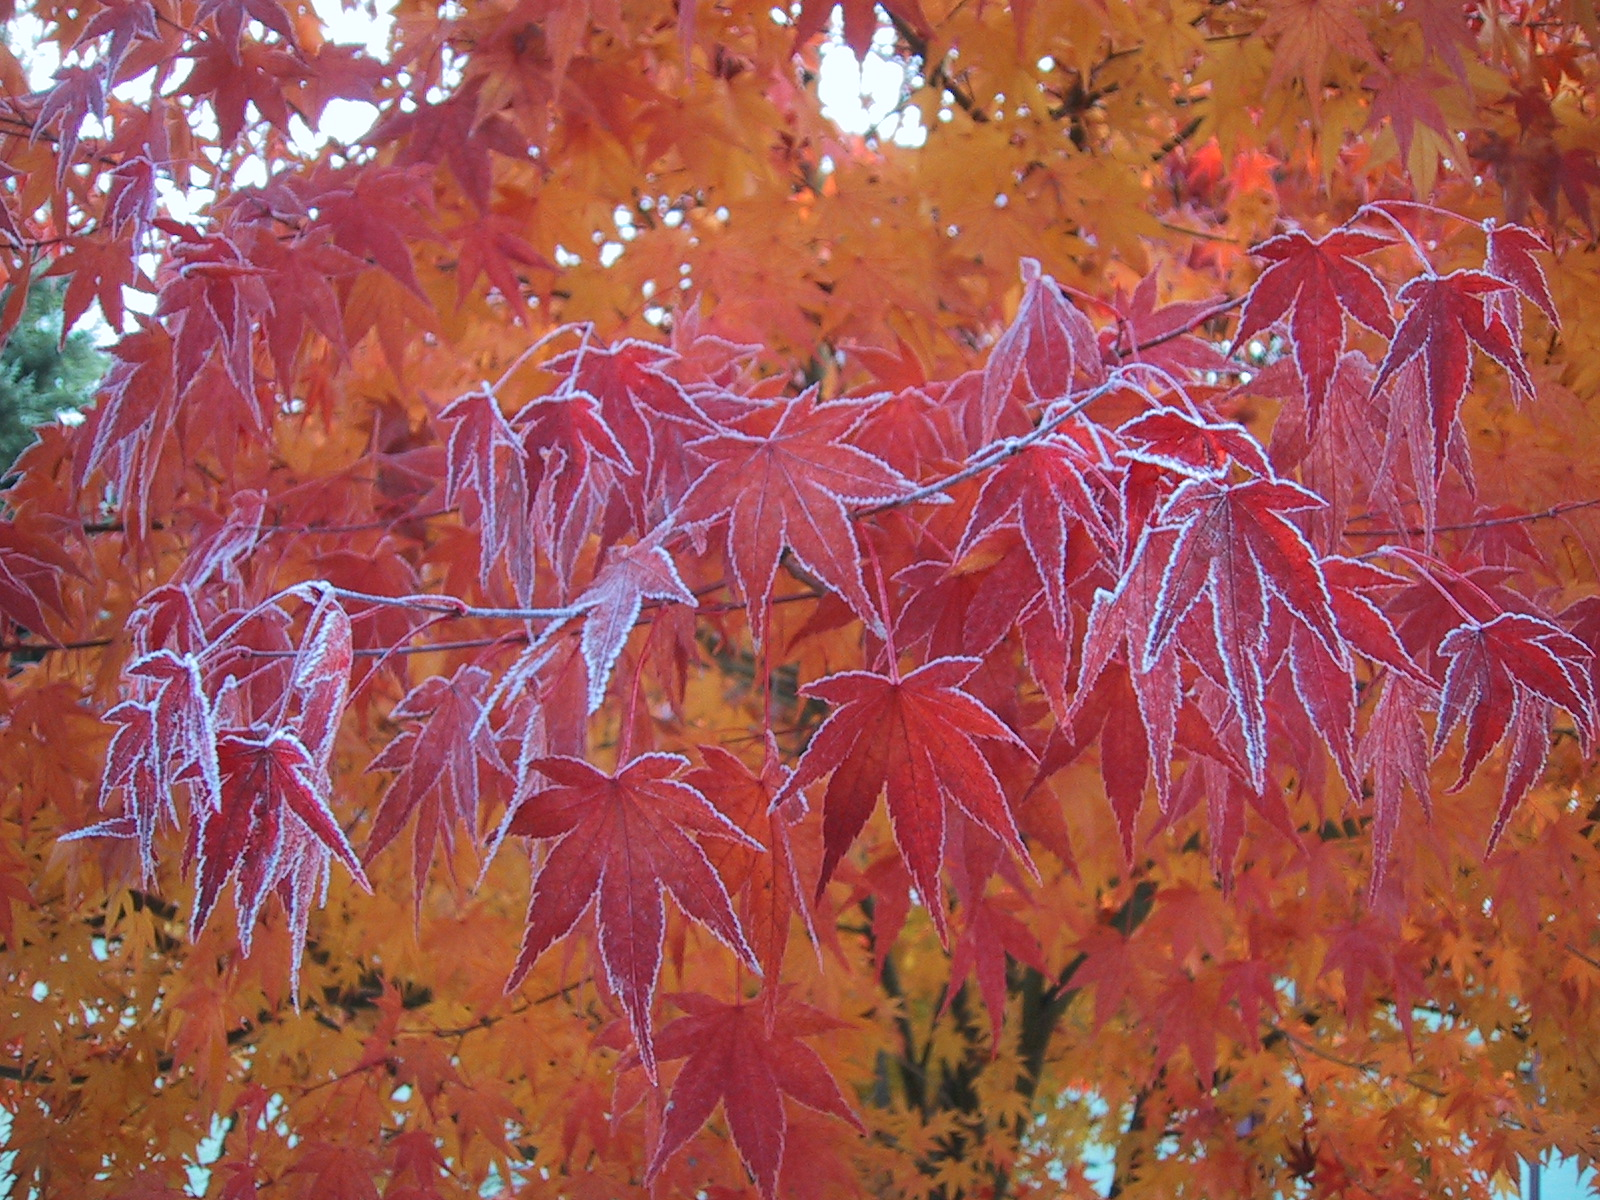 Title: Frosted Leaves Date: November 11, 2000. Location: Bothell, WA Camera: Cannon PowerShot 100. Resolution: 1600 x 1200